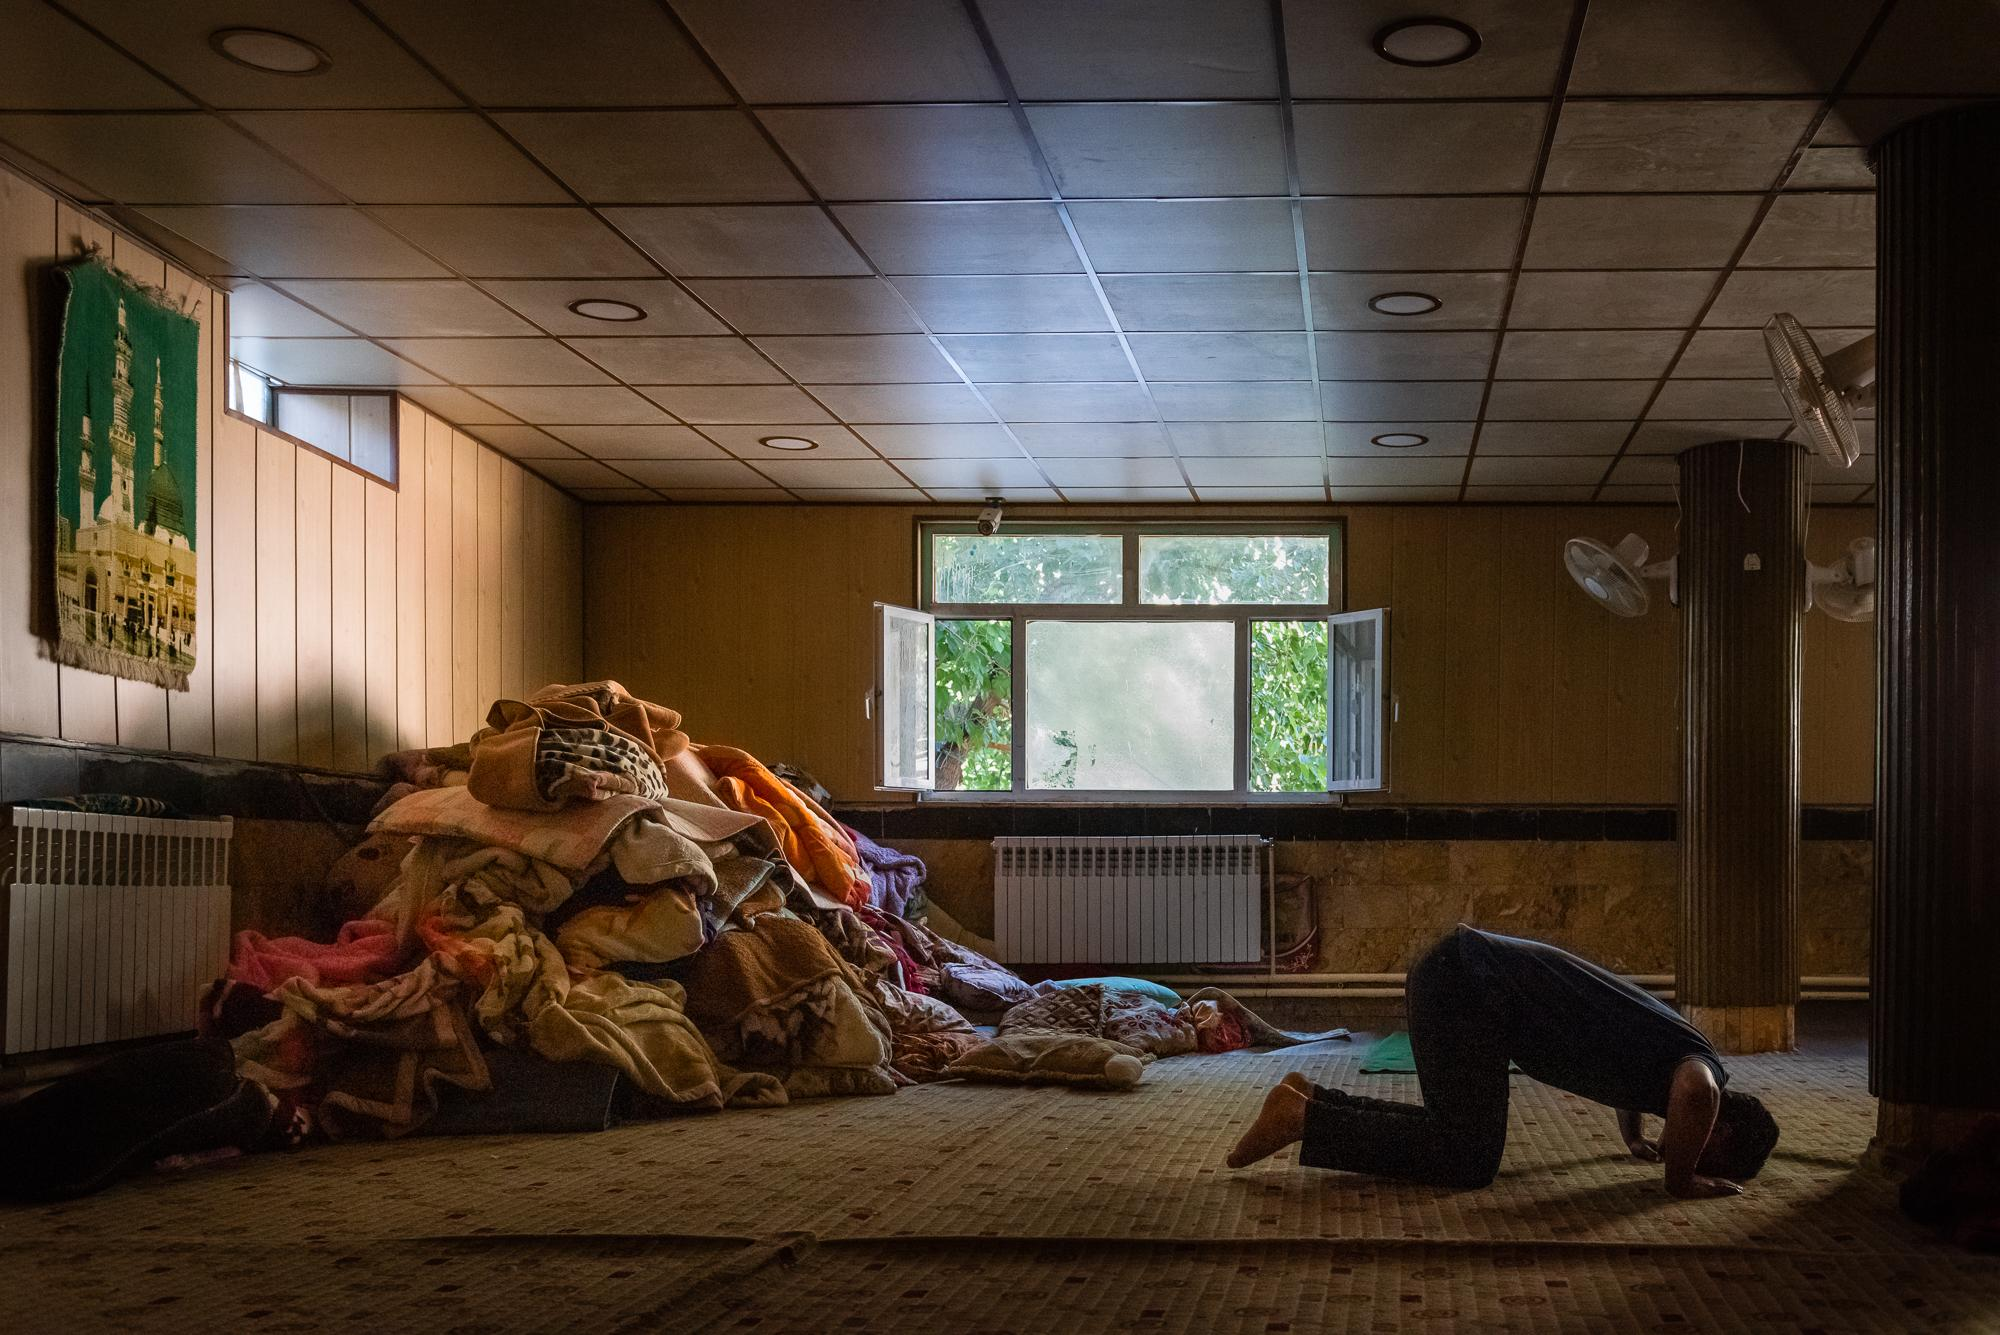 "BYARA, IRAQI KURDISTAN – SEPTEMBER 13, 2019: A man praying inside the sleeping hall of ""khanaqa"" (a building for gatherings of Sufi Muslims) at the Islamic School of Byara. It welcomes everyone from all walks of life, including non-Muslims, to eat and sleep while staying in this small Kurdish village close to the border with Iran."